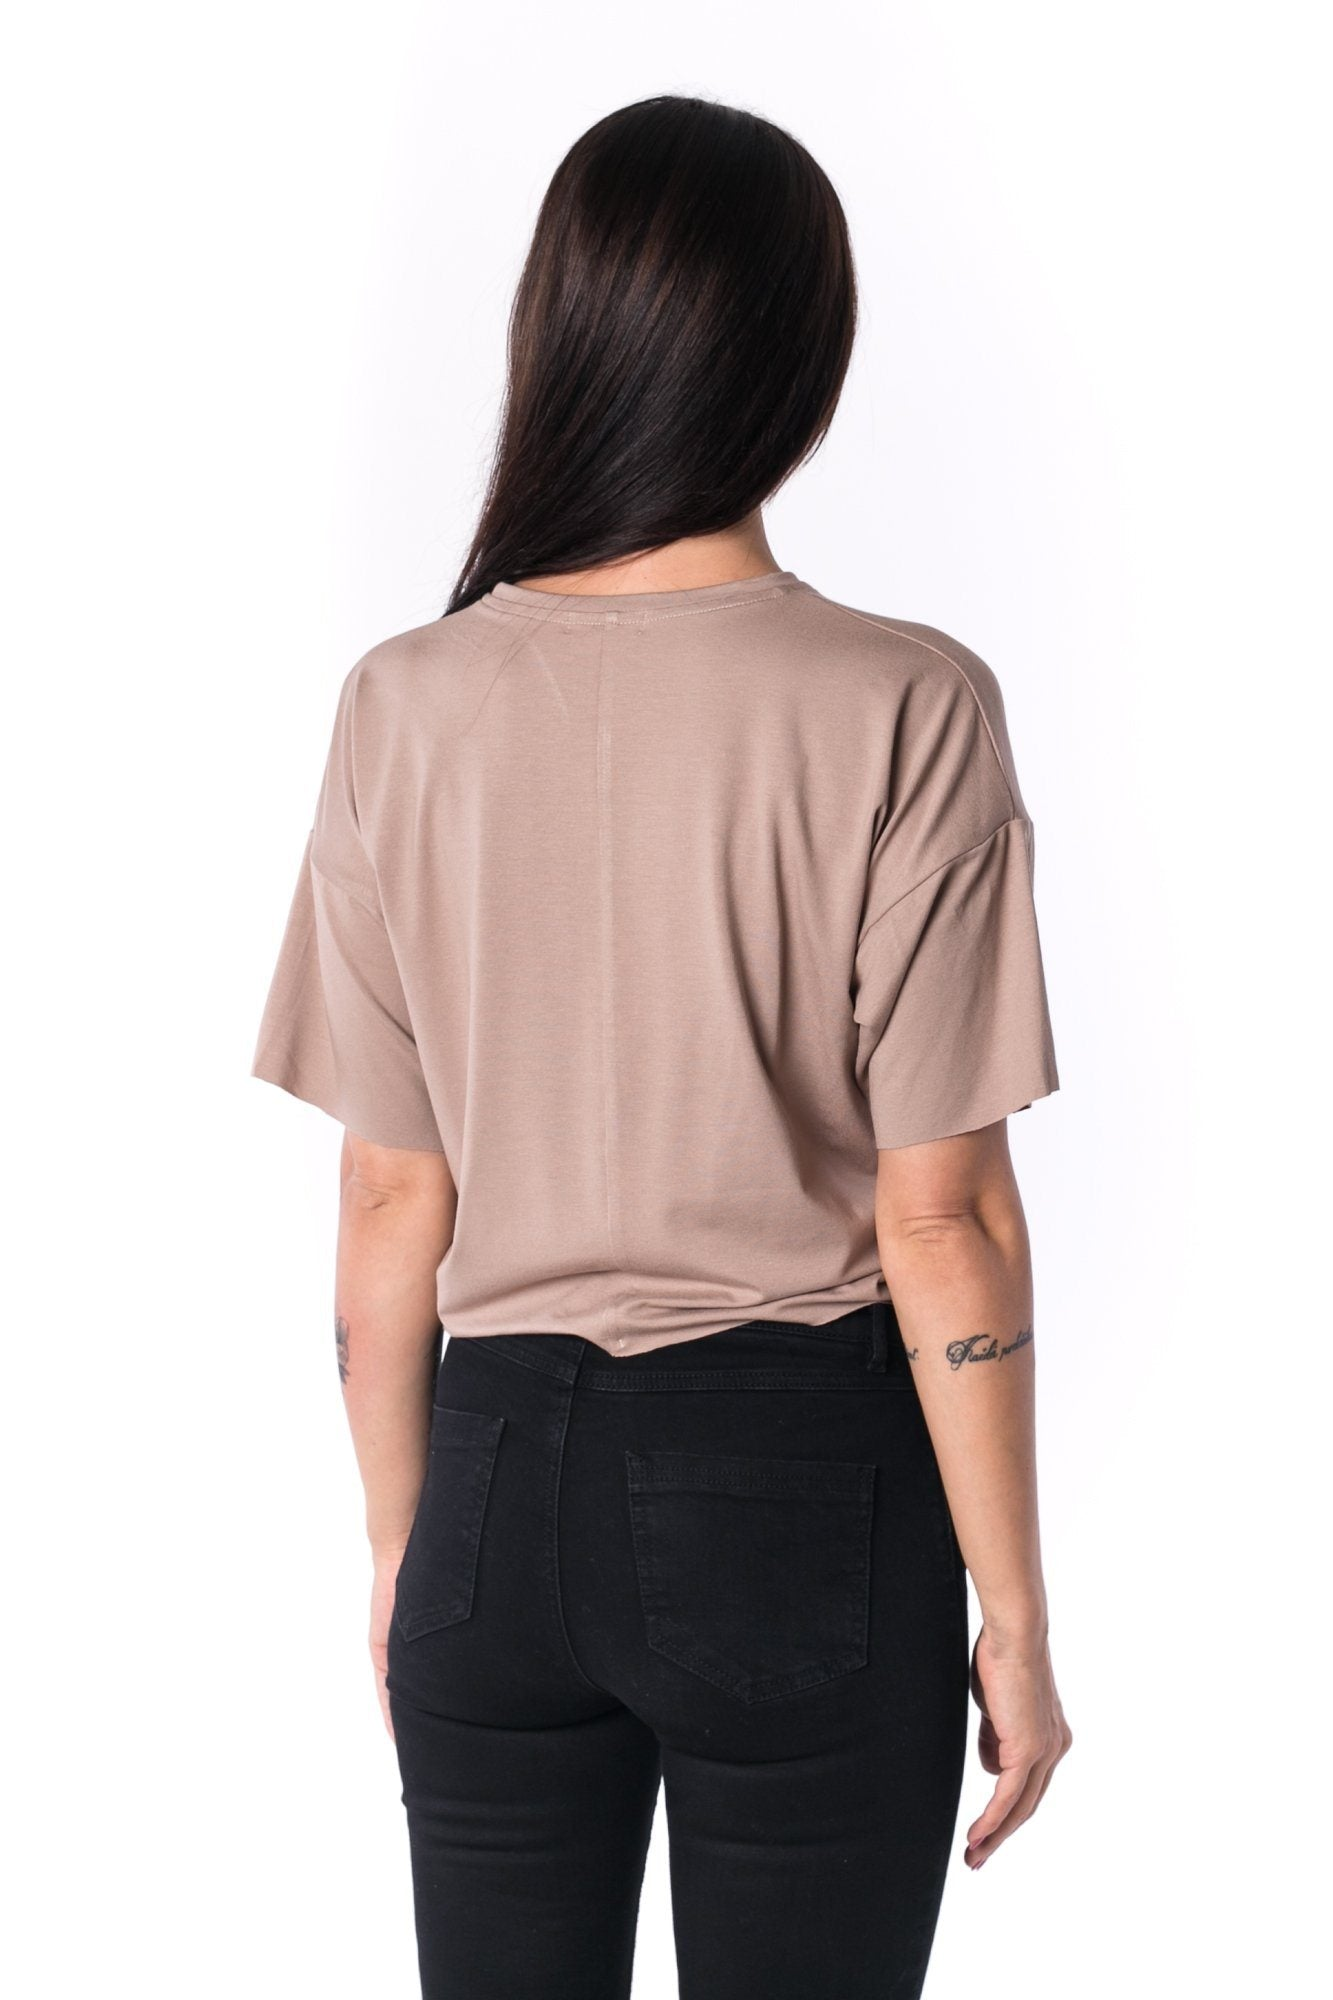 The Woman Panelled Oversized Cropped Tee 17 // mocca